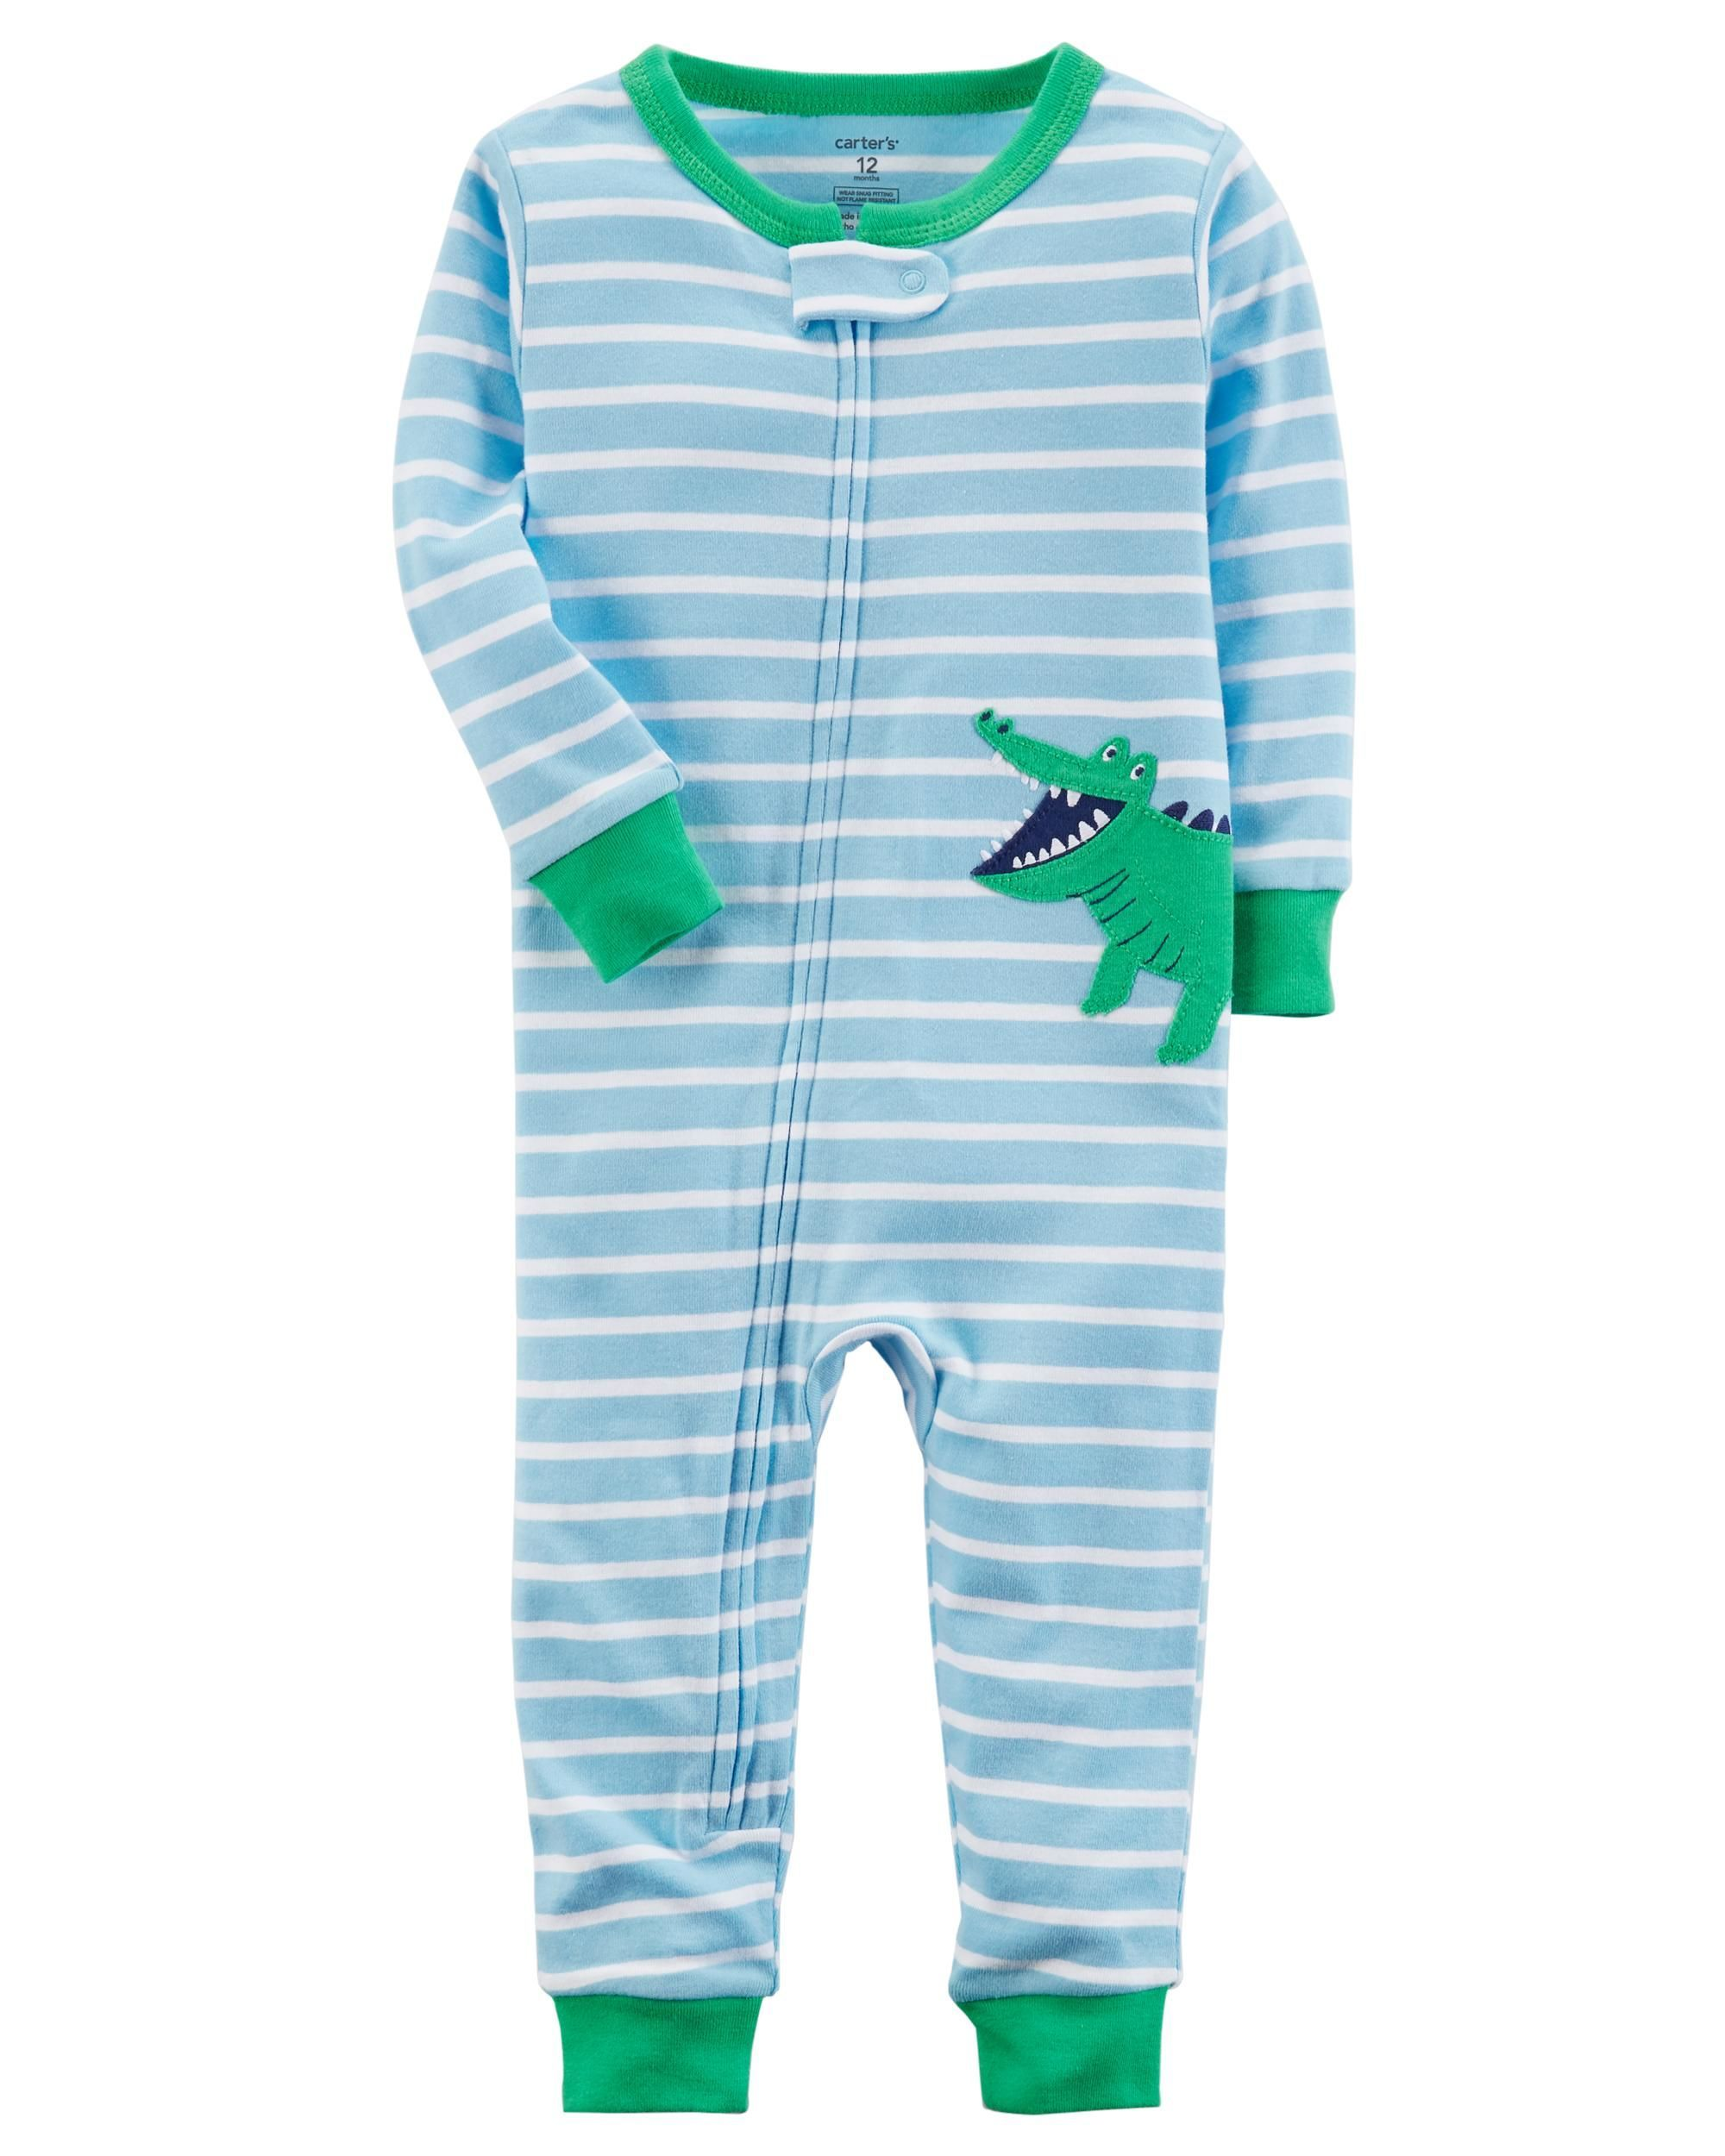 8b9b2d7bde23 1-Piece Alligator Snug Fit Cotton Footless PJs